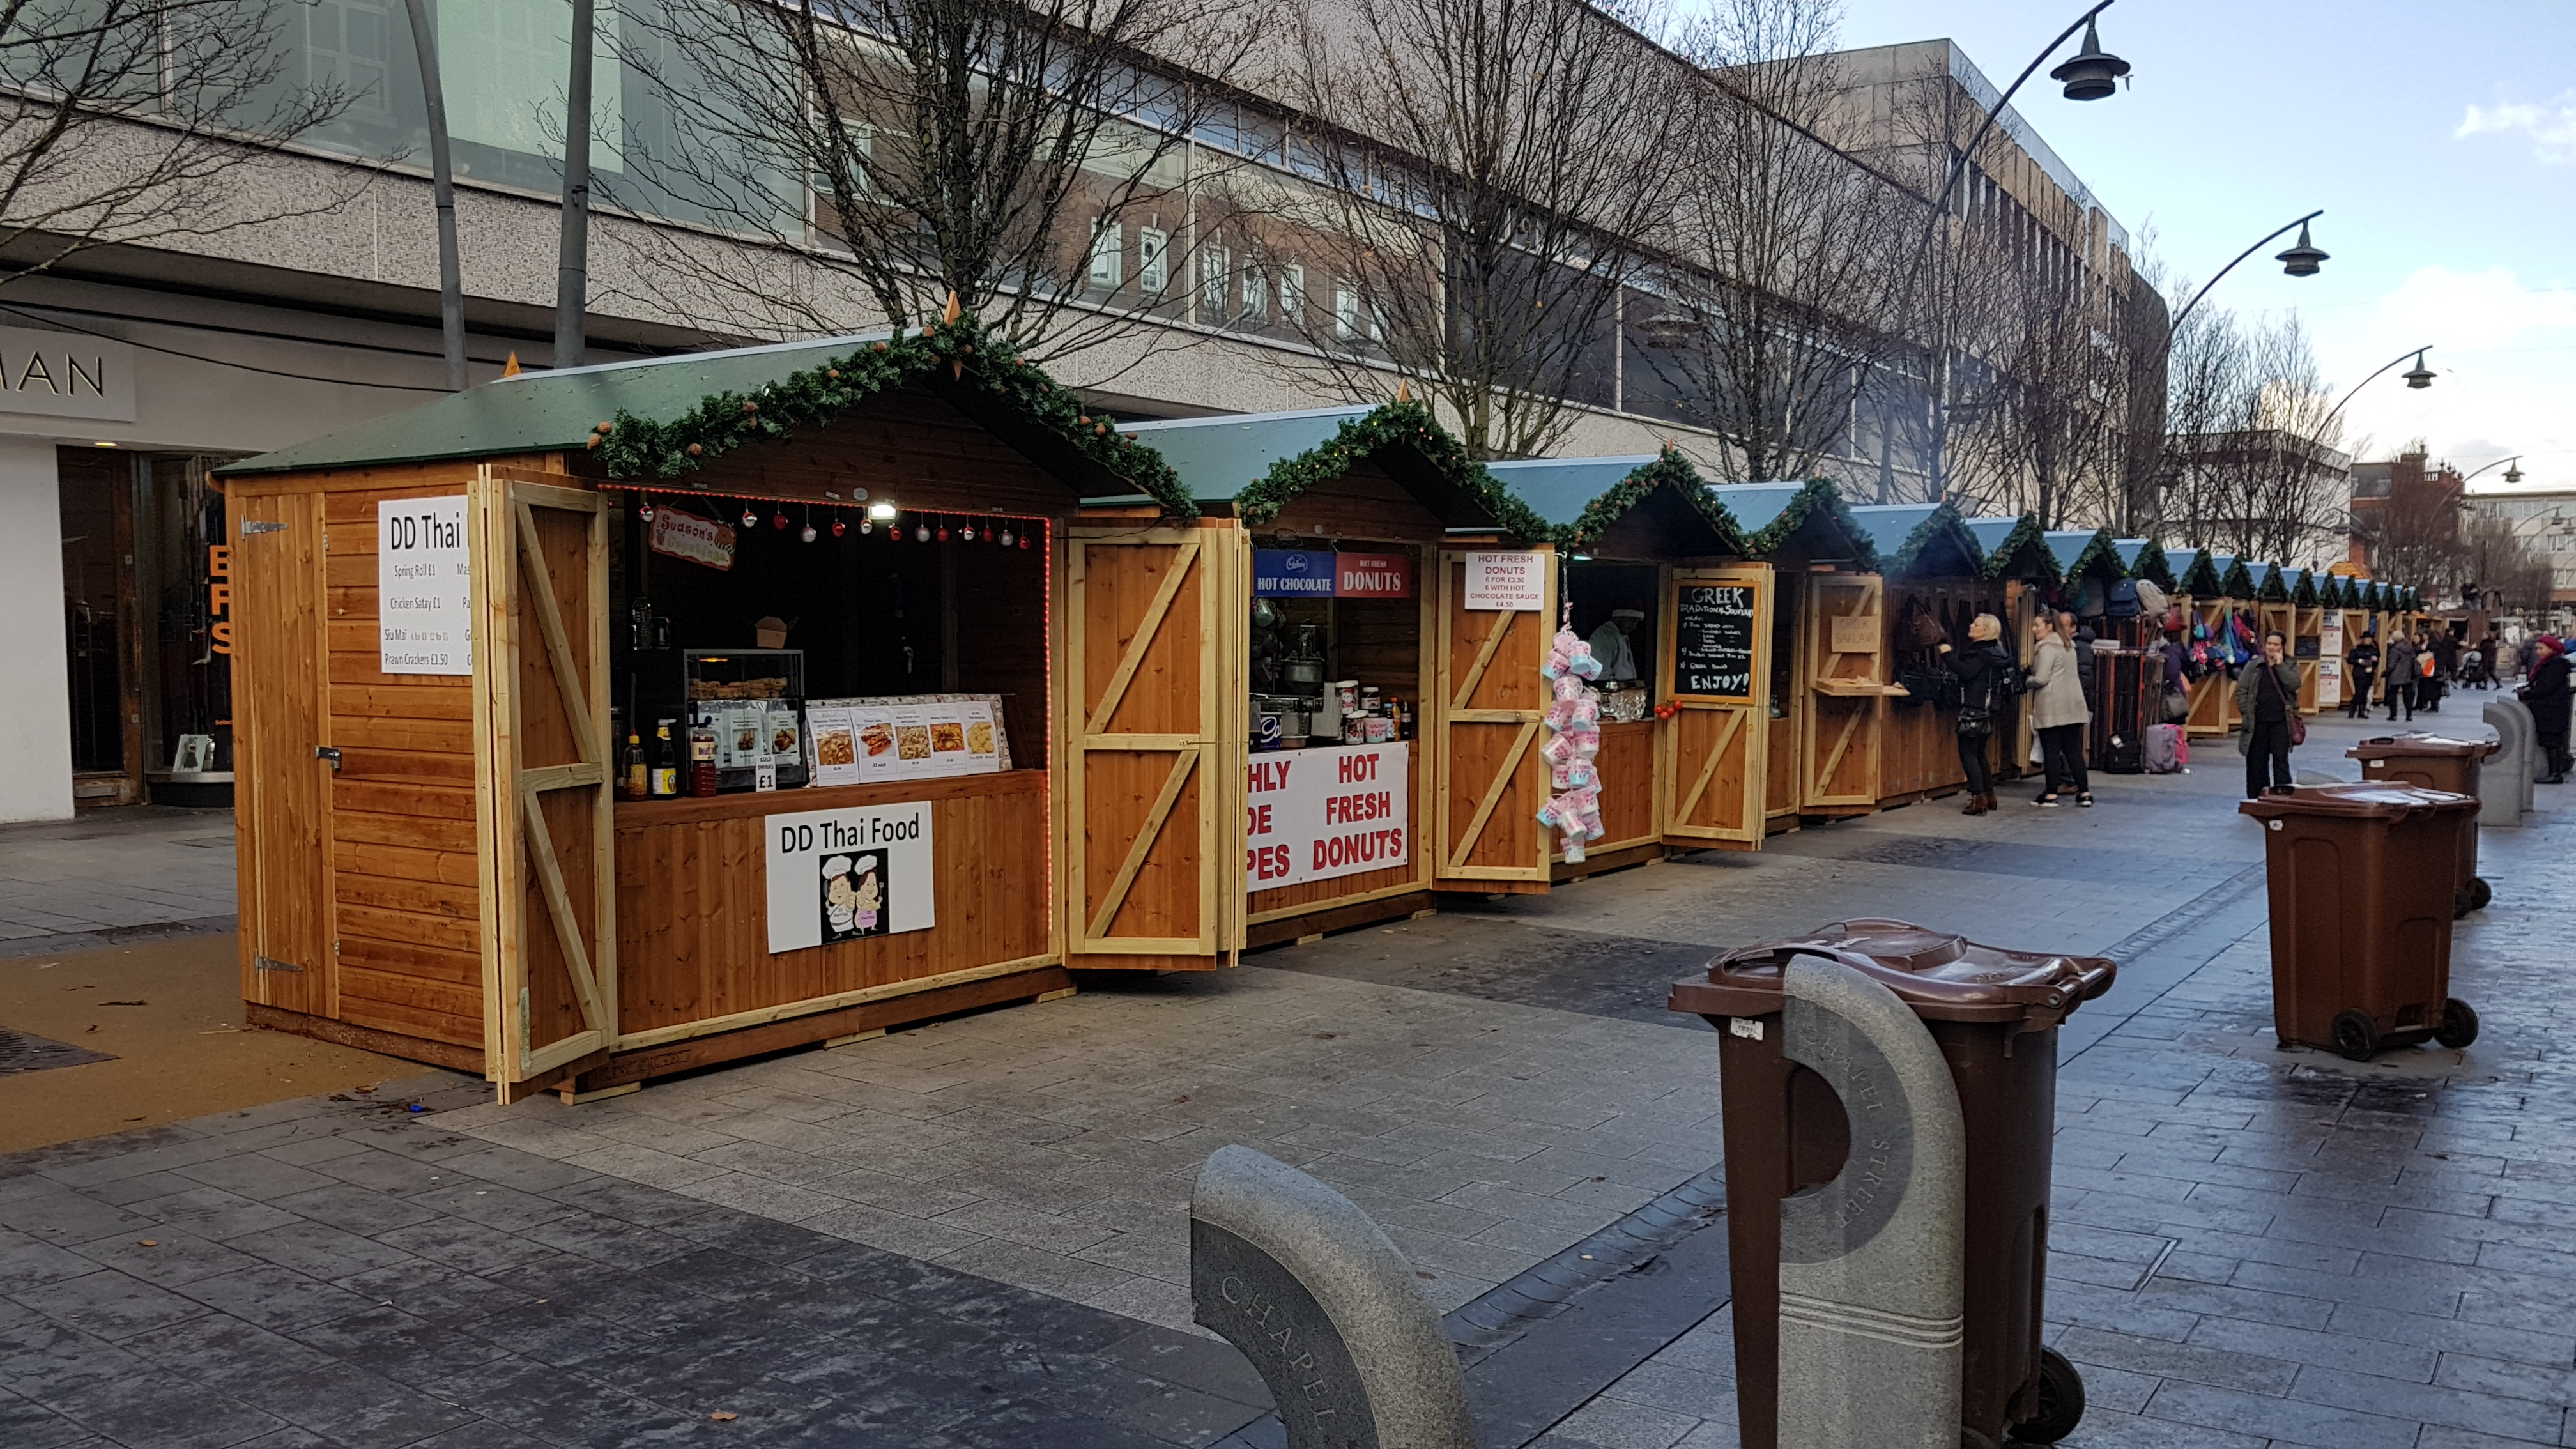 The Christmas Market Chalets are now open on Chapel Street.There does not seem to be as many this year and according to the Southport Christmas Market Facebook page there is still availability.    BEFORE IT IS TOO LATE book your Christmas Market stall - last minute availability!  Double stall...